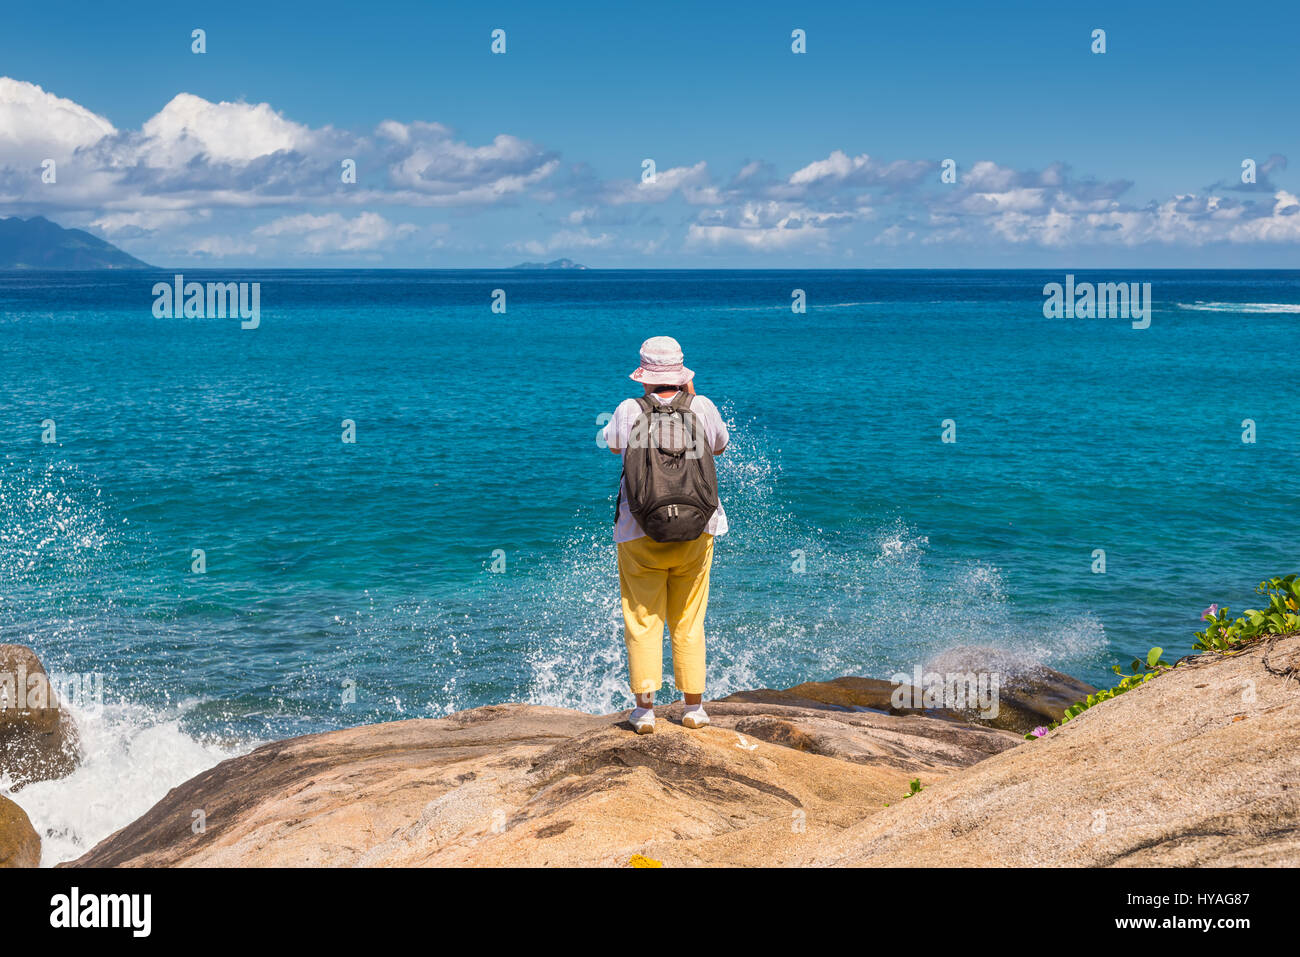 Anse Major, Mahe, Seychelles - December 16, 2015: Female tourist on the Anse Major Nature Trail in the hike near - Stock Image